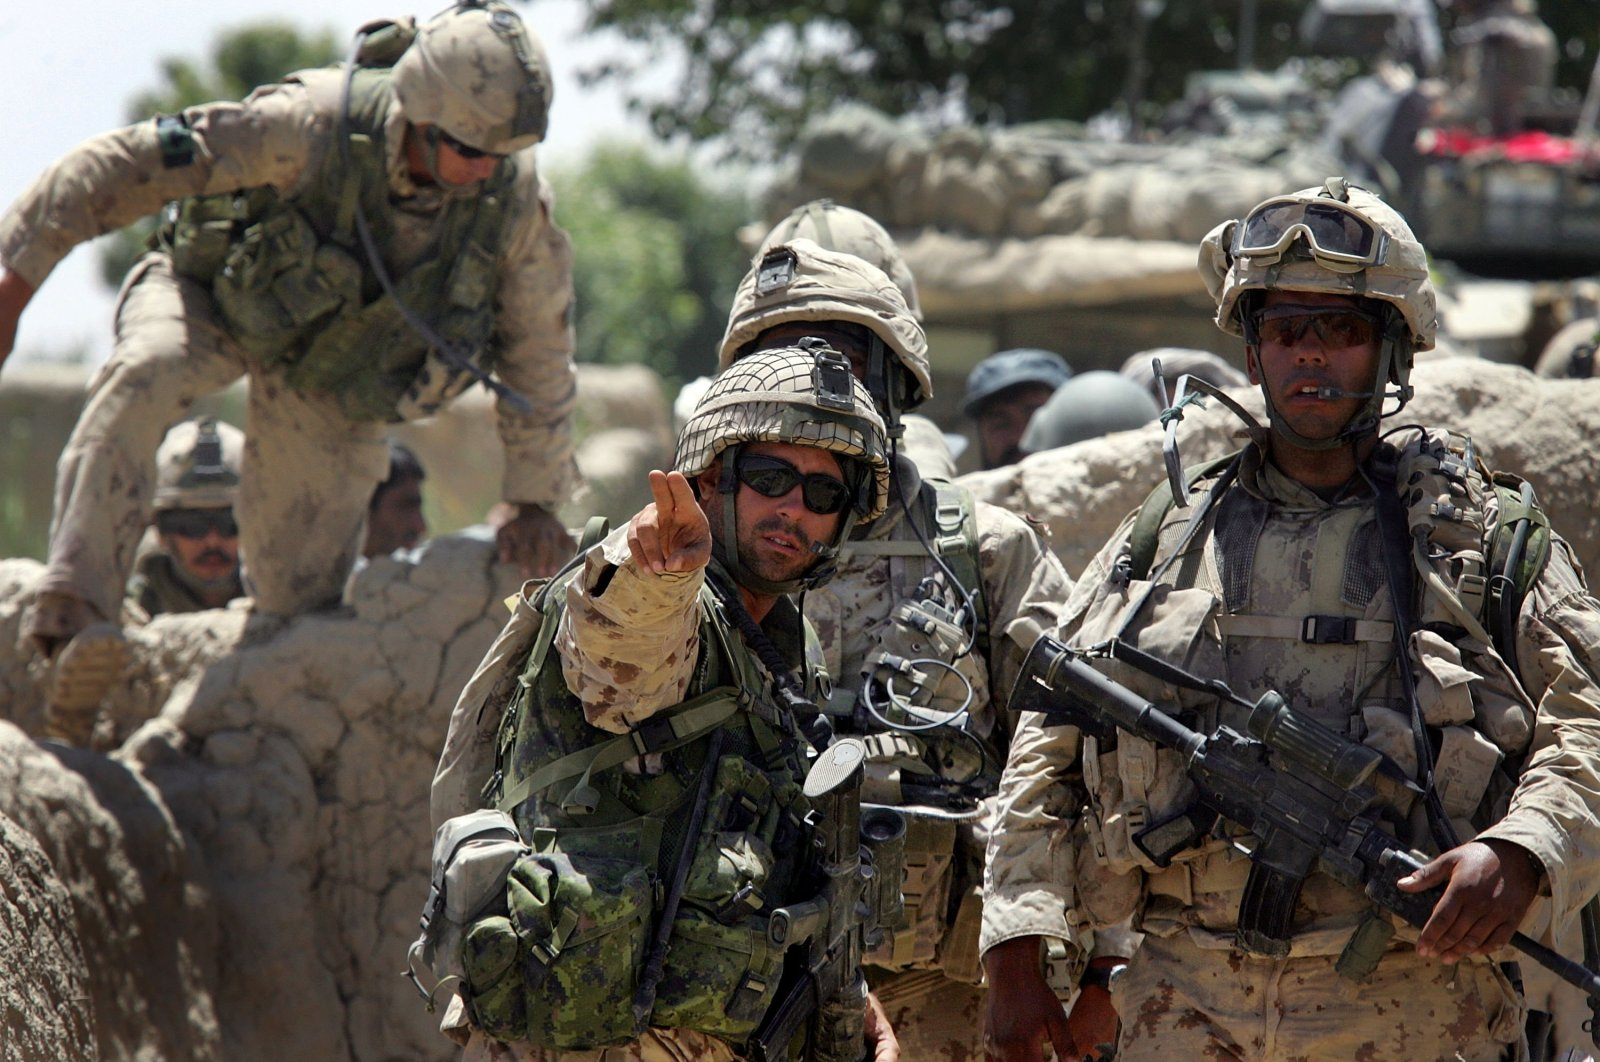 Canadian forces, including Sgt. Dave Limon (C) and Capt. Hugh Atwell (R), prepare to move through a village while conducting a search operation in the Panjwai district about 30 kilometers southwest of Kandahar, Afghanistan, June 13, 2006. (Getty Images)